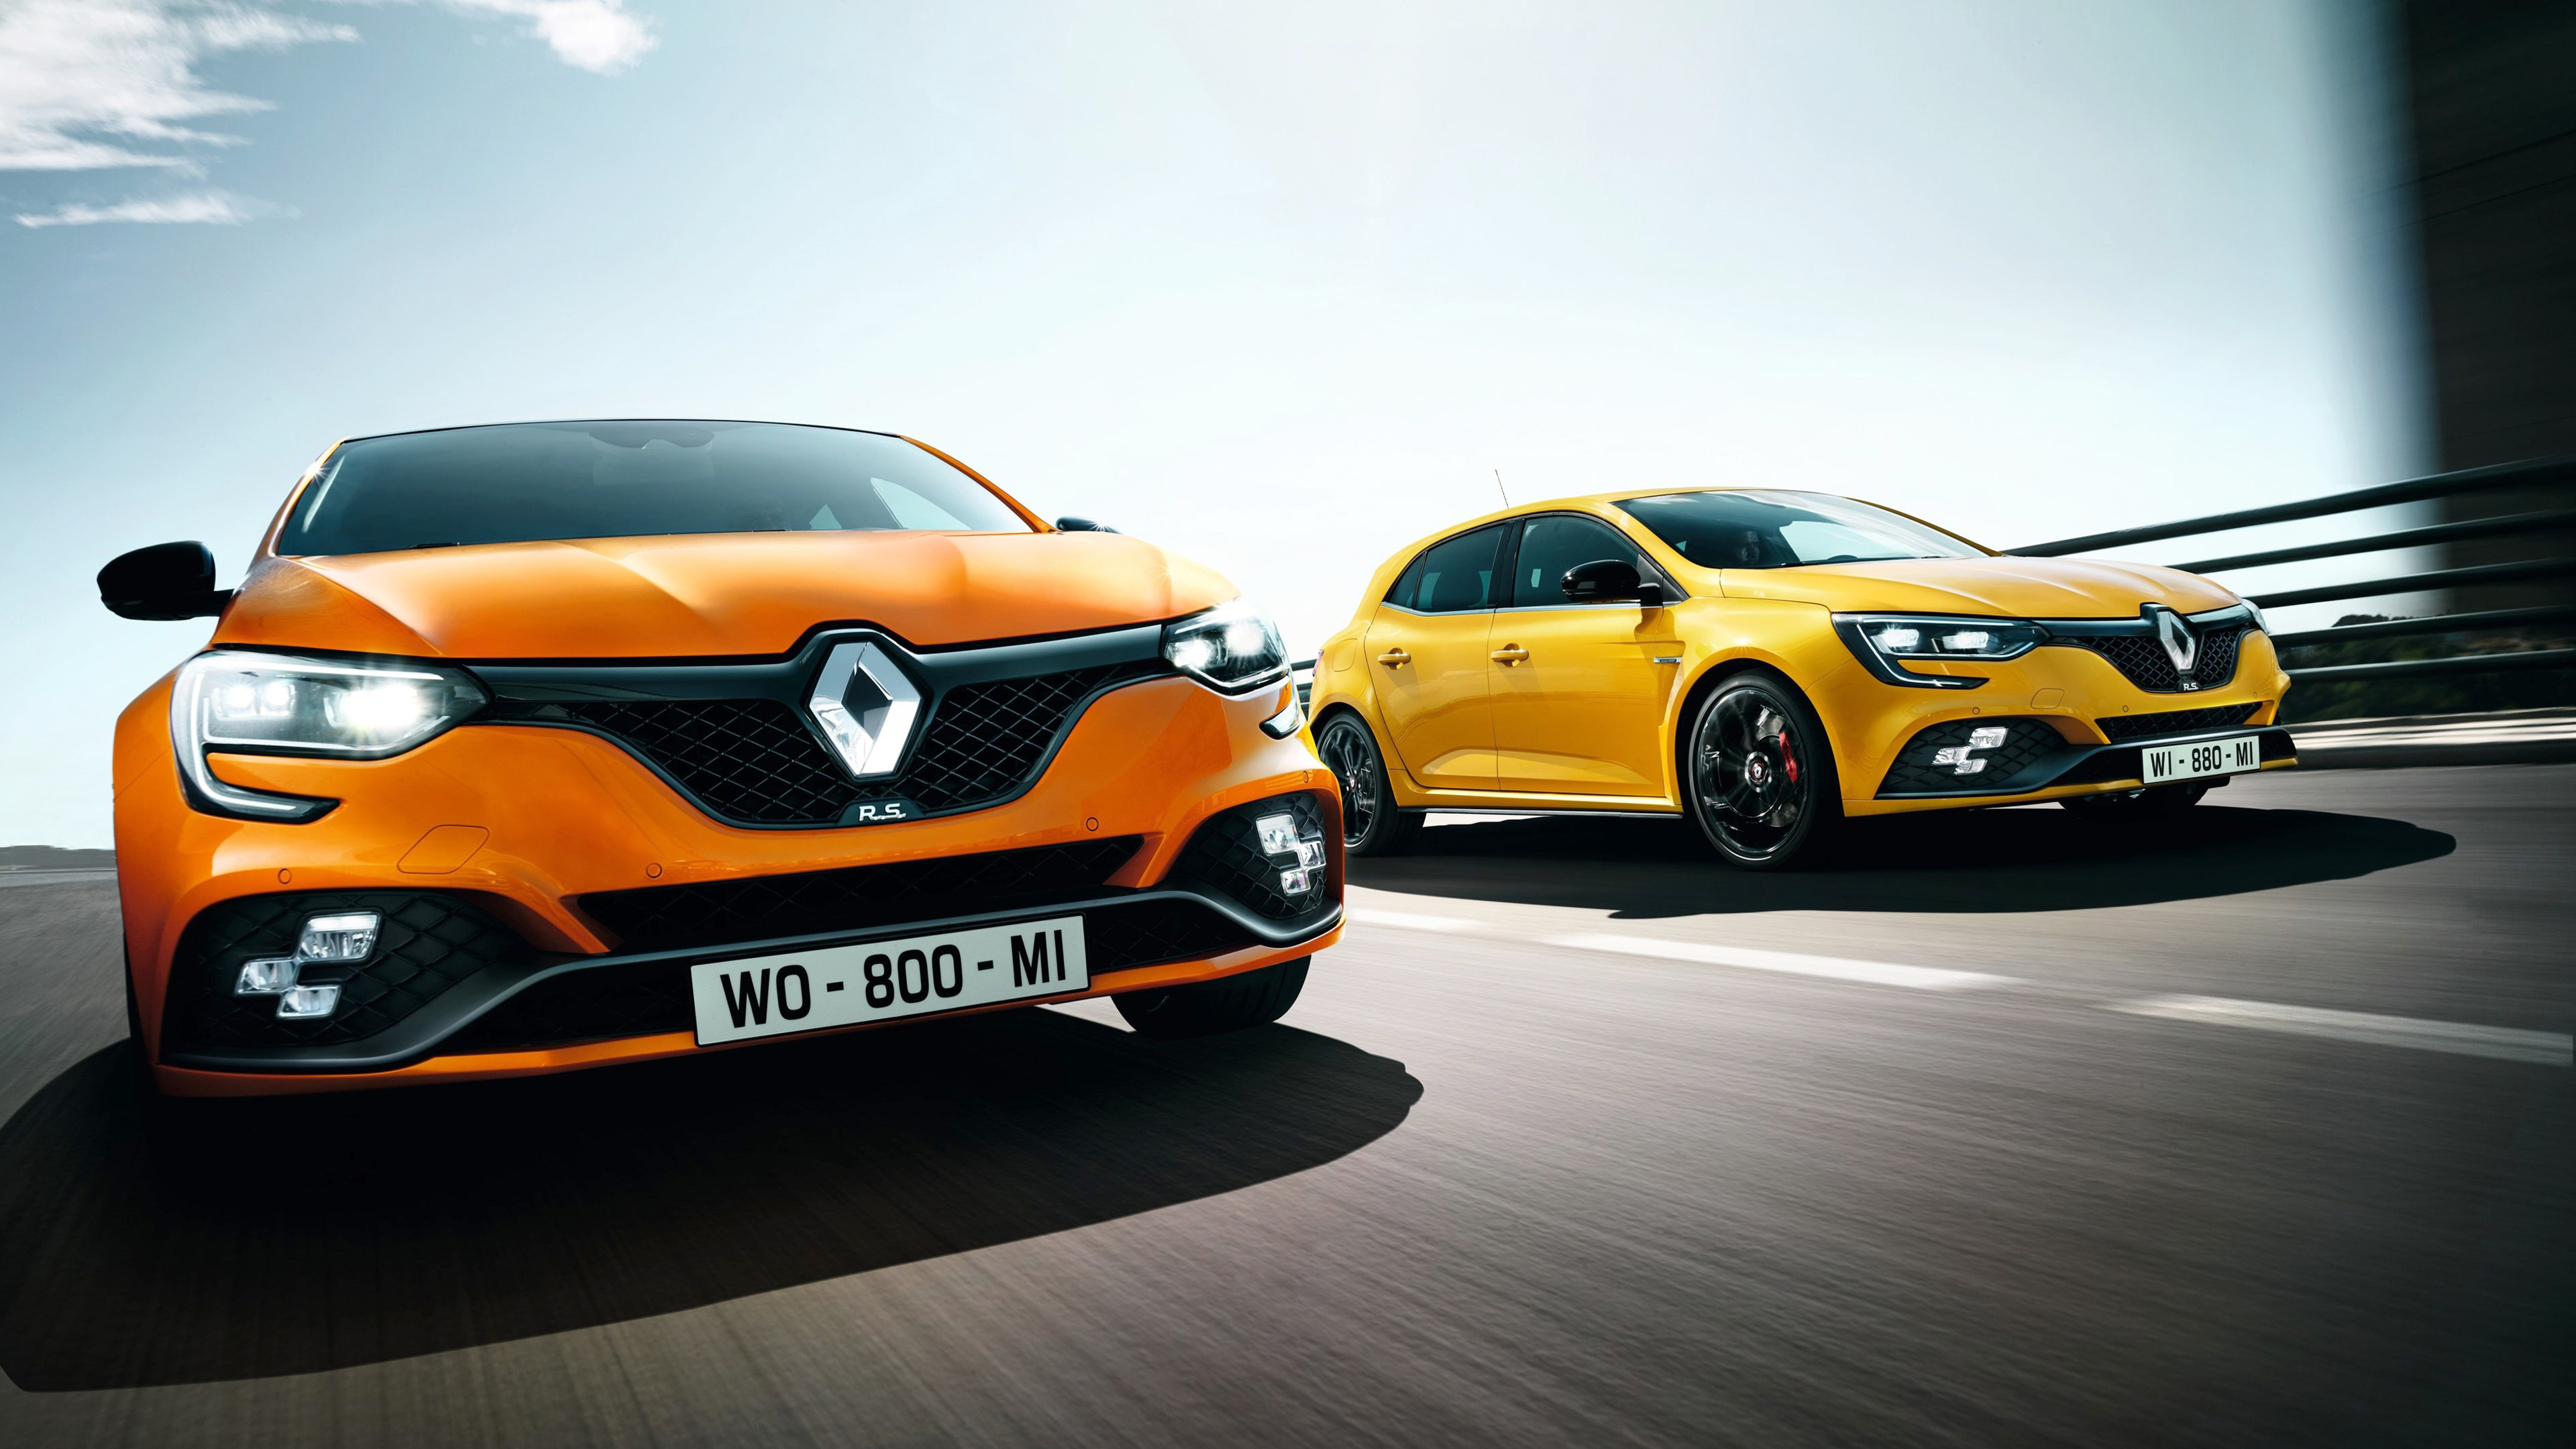 3840x2160 - Renault RS Wallpapers 28